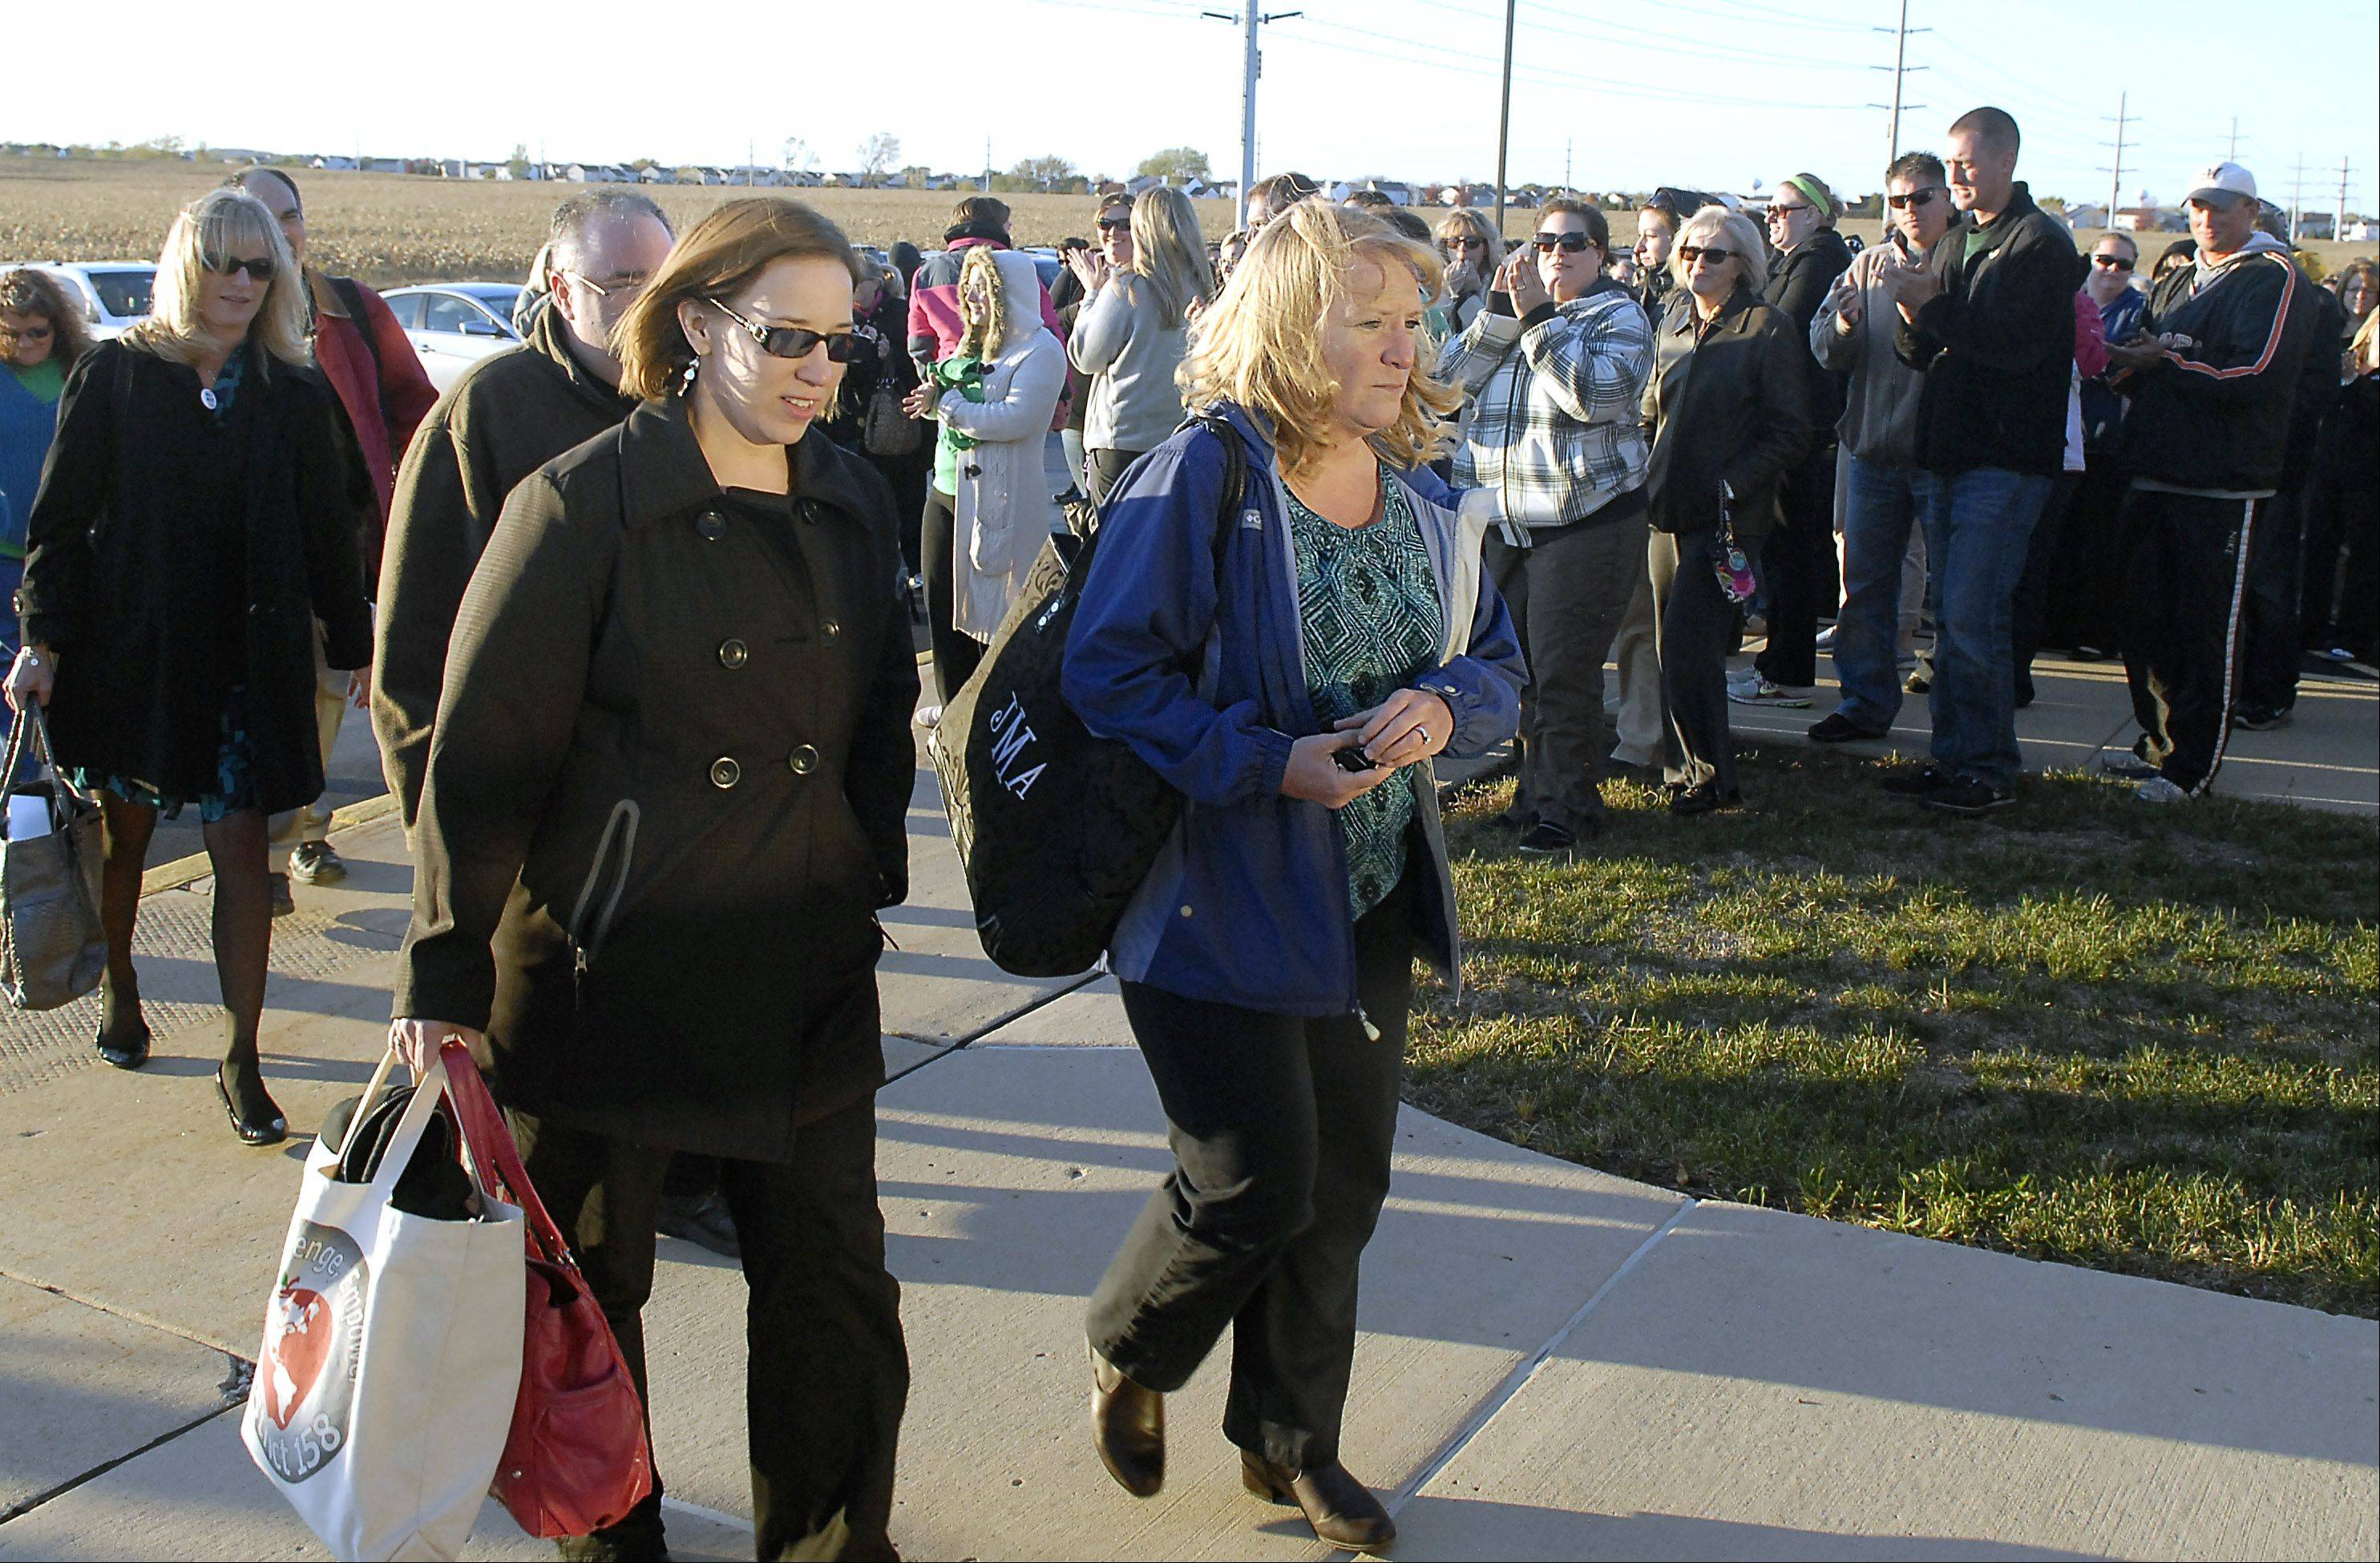 Huntley Education Association co-presidents Chris Laird, left, and Julie McLaughlin are applauded as they and other HEA representatives walk into the Huntley Unit District 158 headquarters in Algonquin to talk with school board members to discuss the terms of teacher contracts on Wednesday.